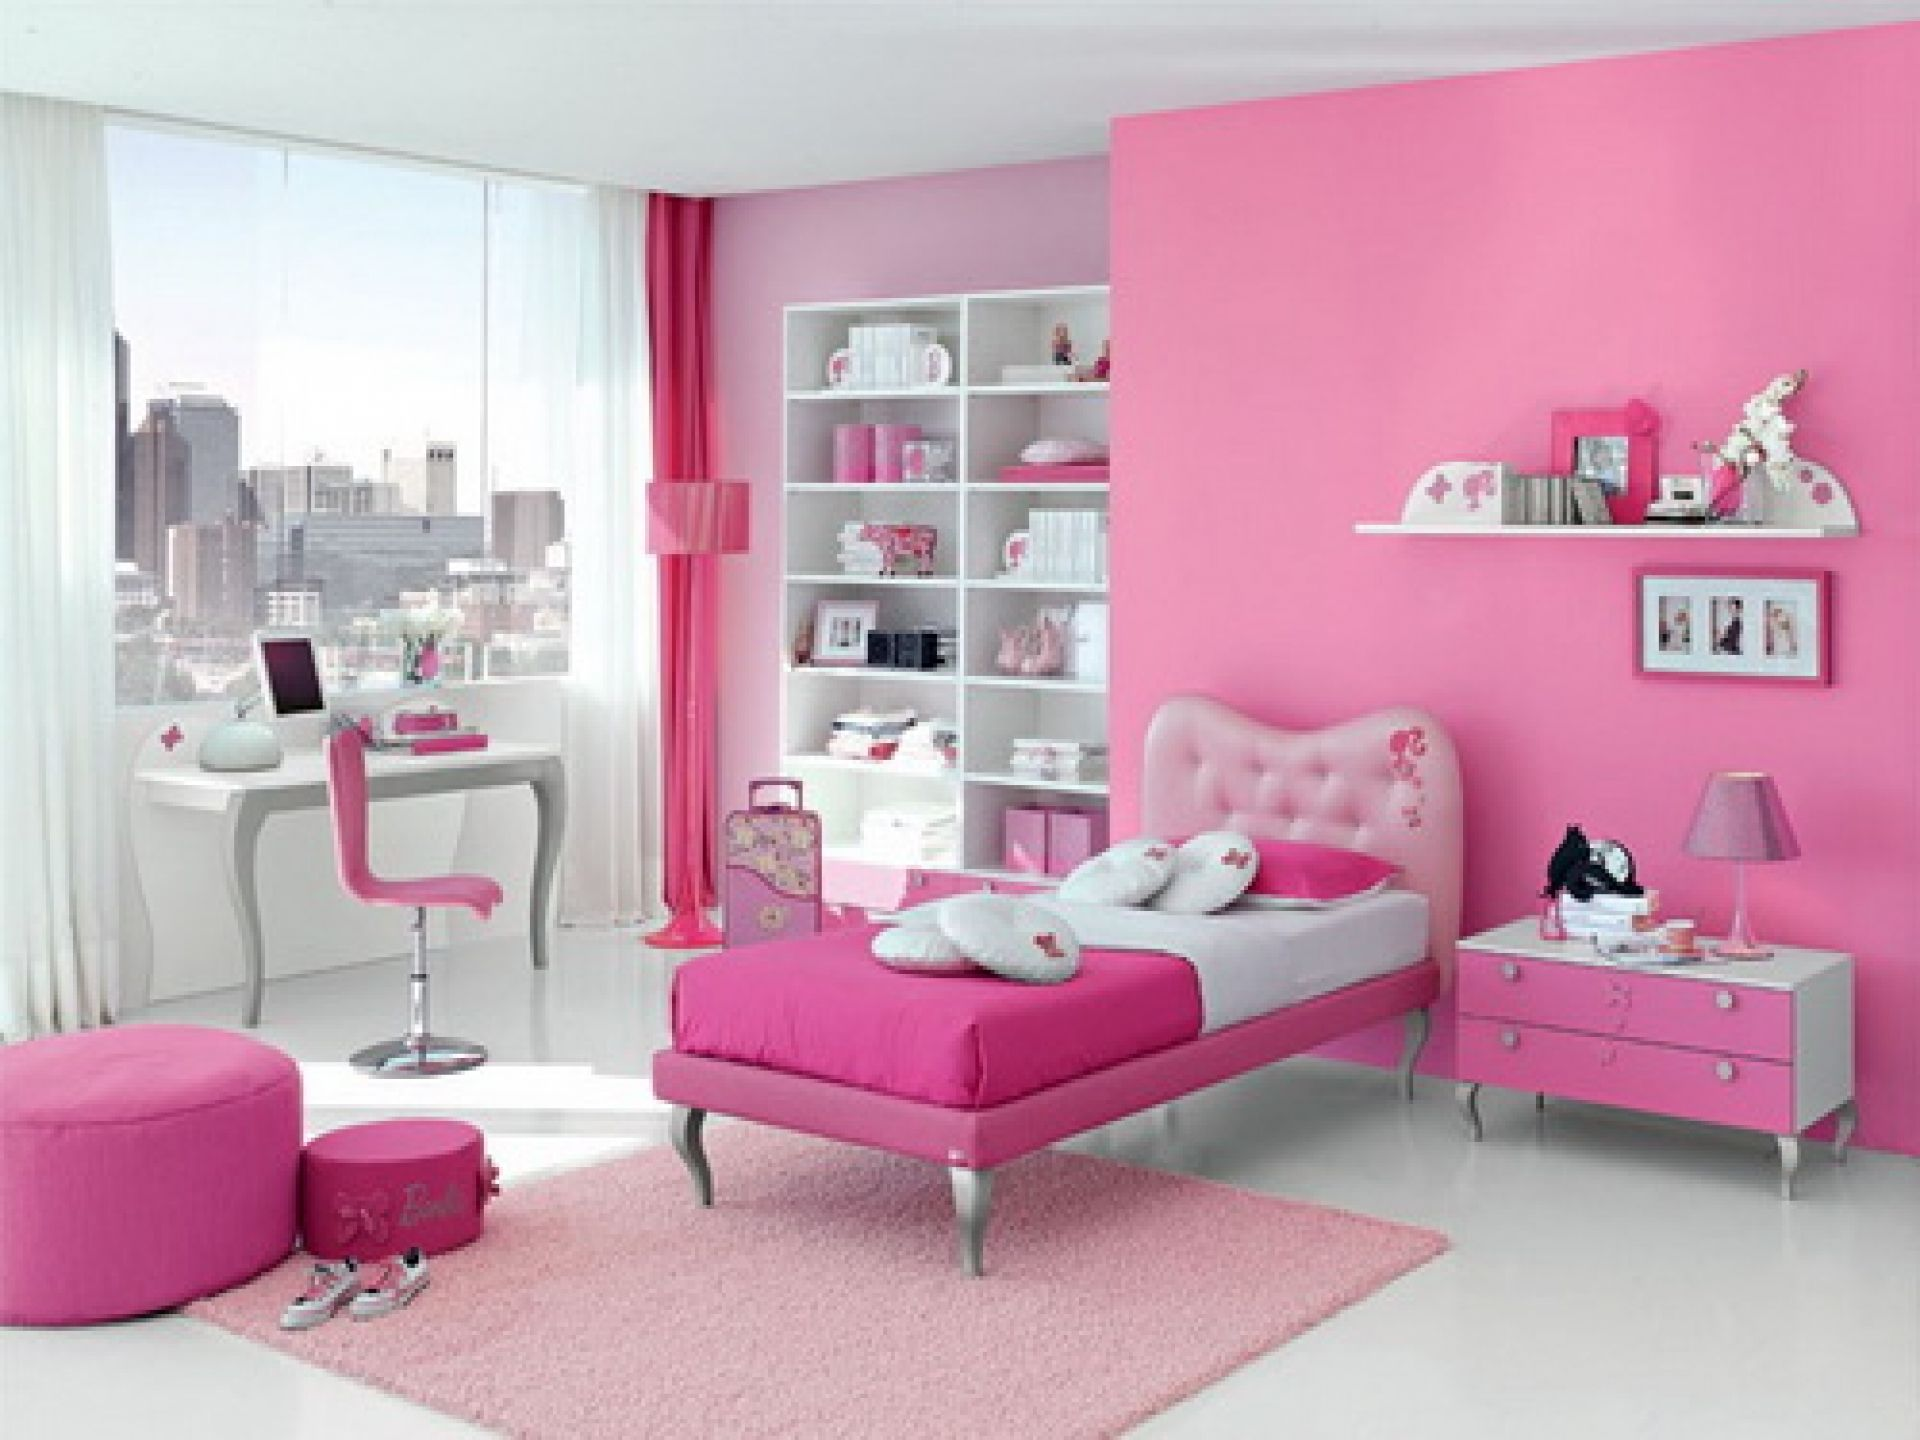 bedroom, pink wall paint decoration glass curtain walls student